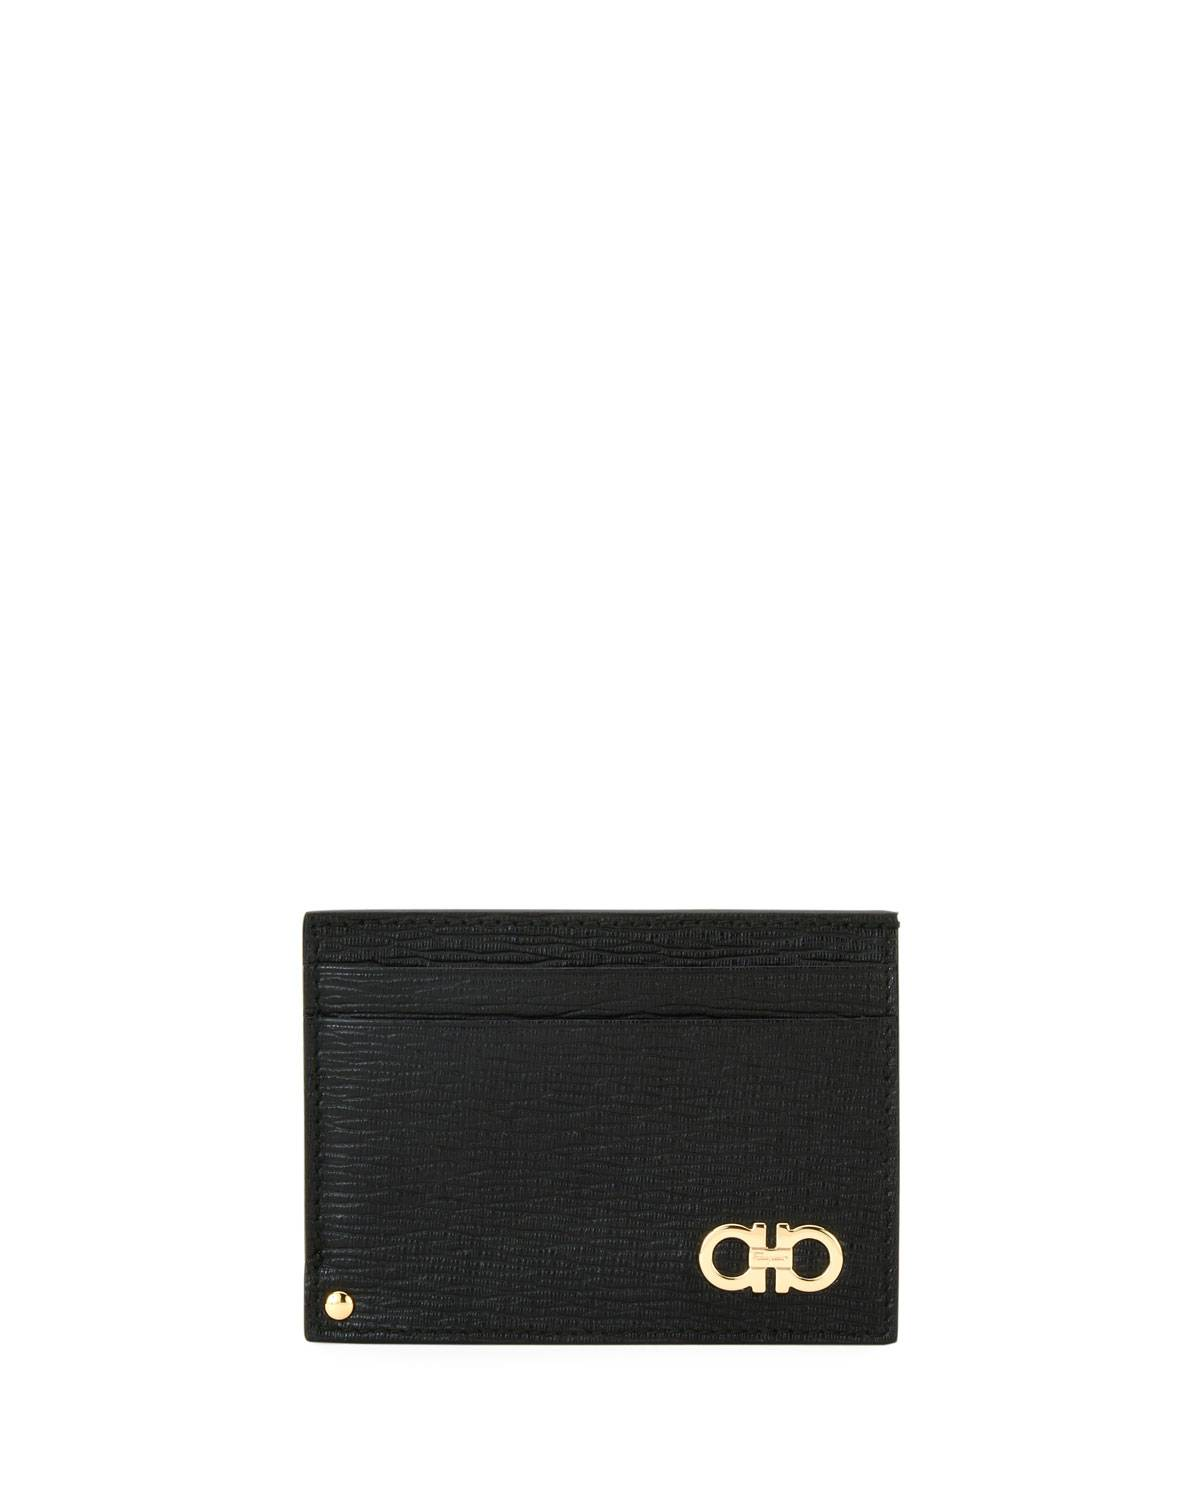 Salvatore Ferragamo Men's Revival Gancini Leather Card Case with Flip-Out ID Window, Black